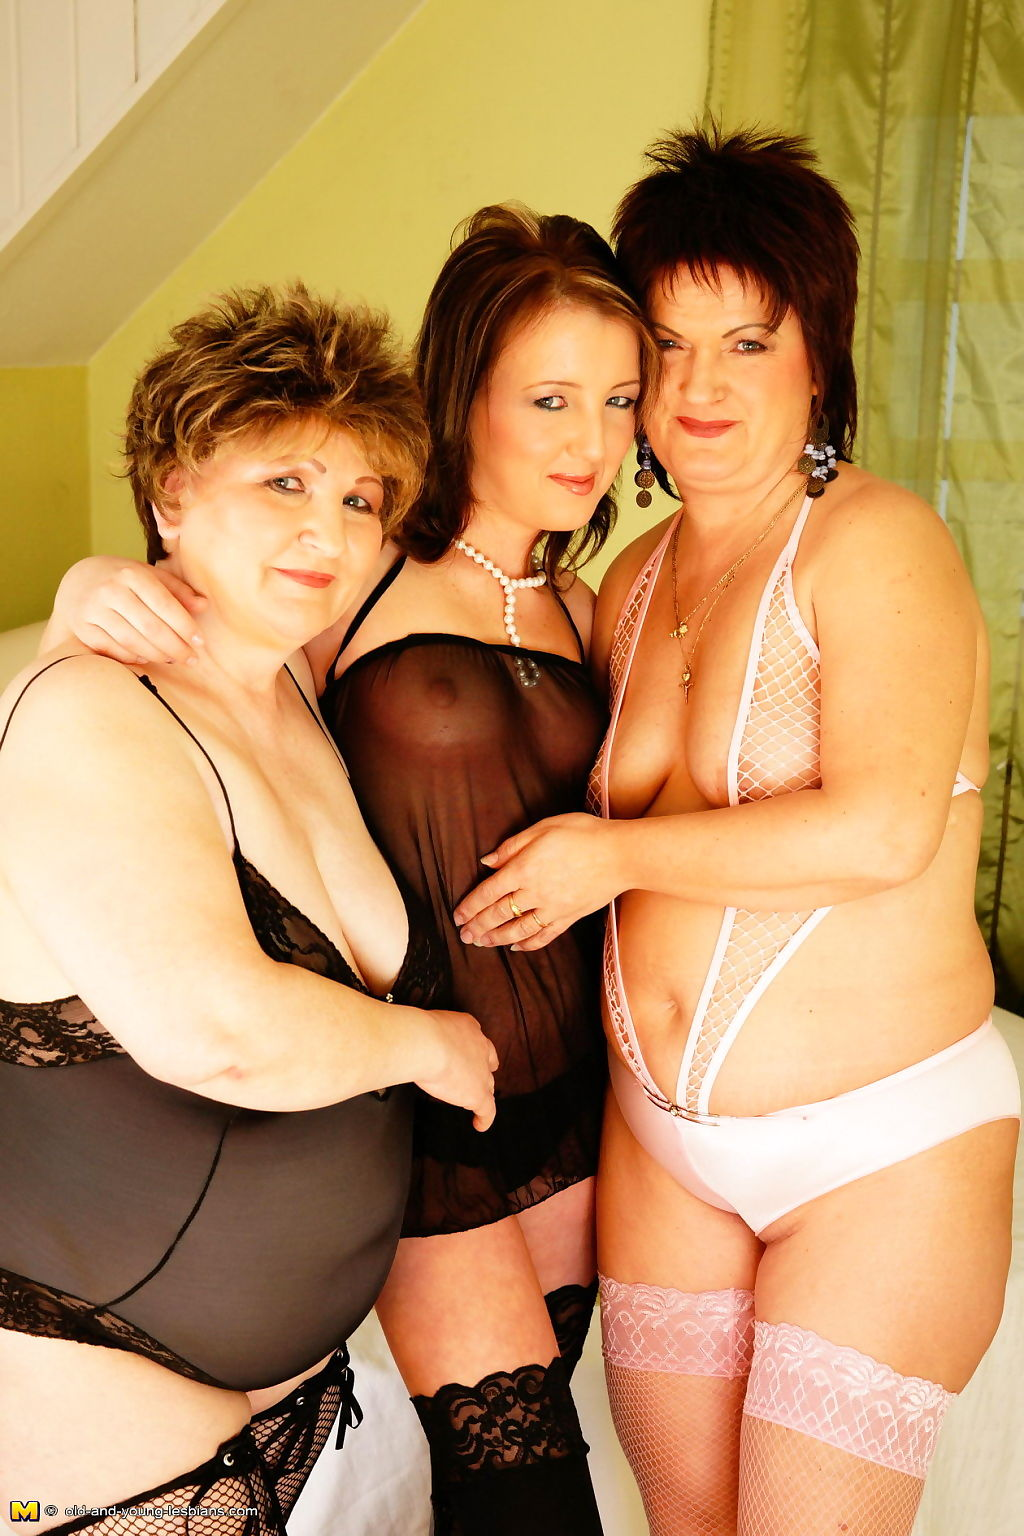 Two older lesbians get down on a hot young babe - part 3551